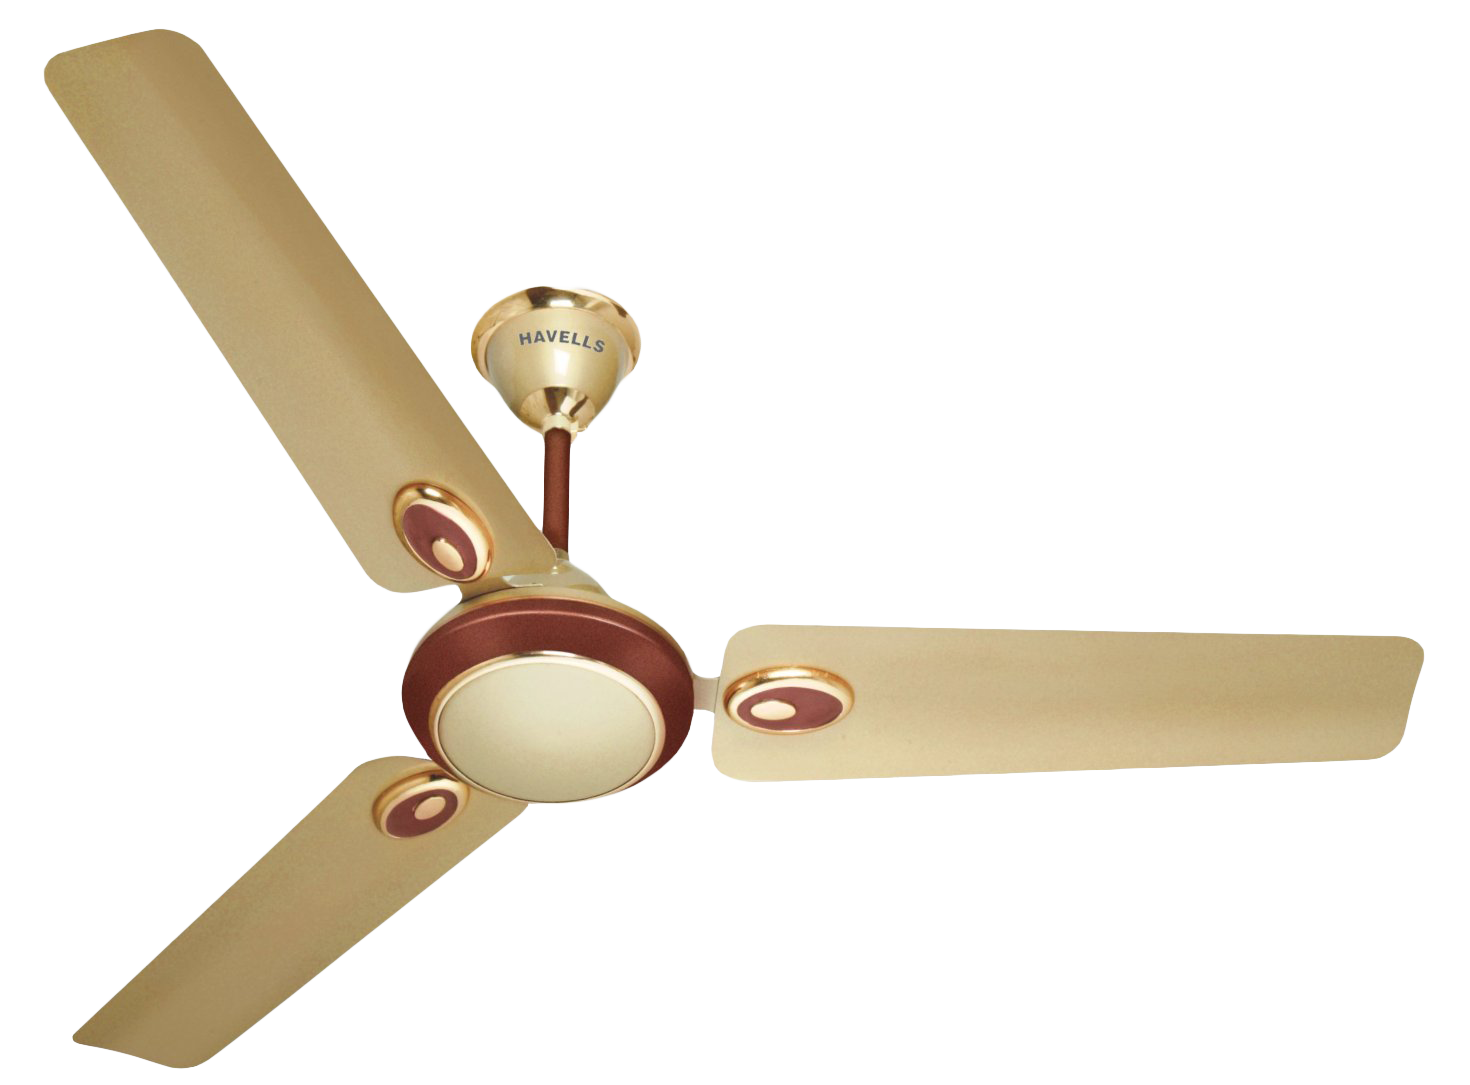 three blade ceiling fan png image pngpix #16929